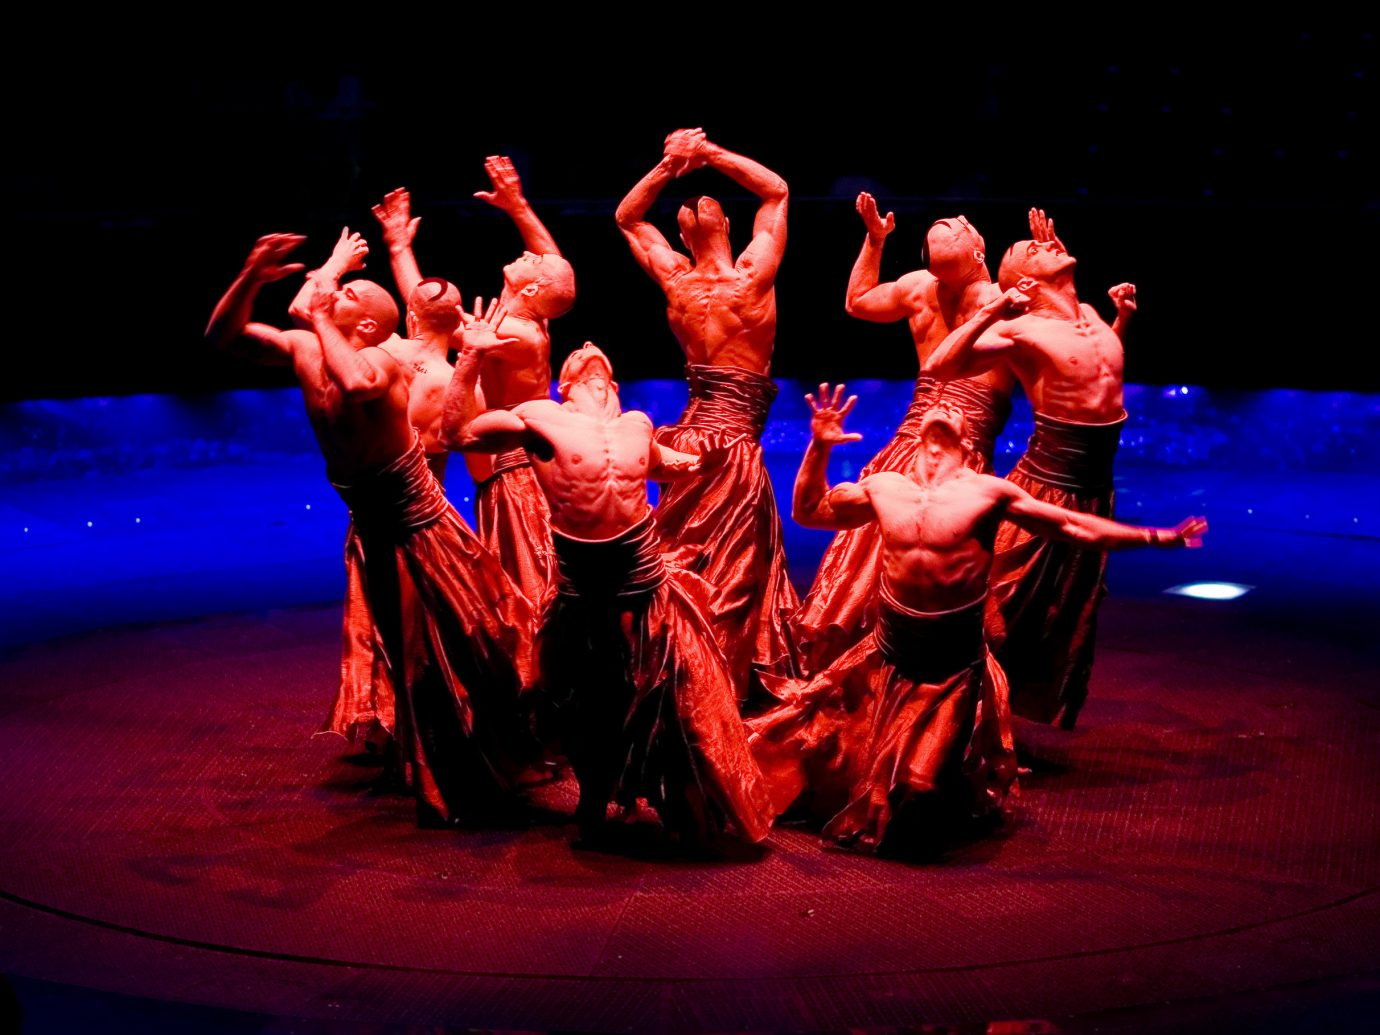 Trip Ideas performing arts performance dance Entertainment performance art stage sports musical theatre event modern dance theatre concert dance dark